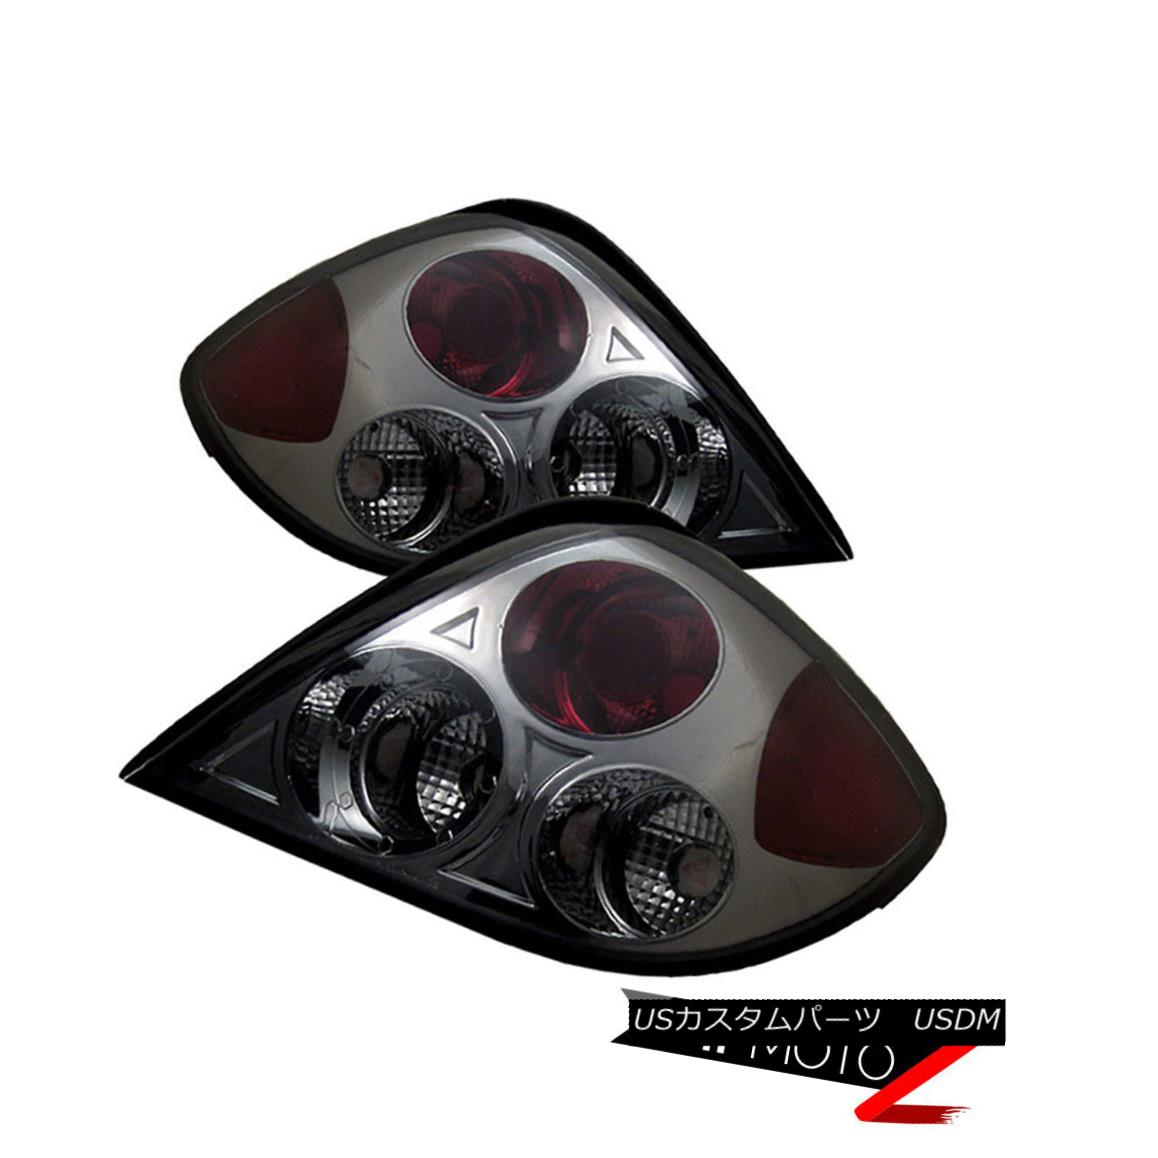 テールライト 2003-2005 Triburon GS GT SE Titanium Smoke Rear Brake Tail Light Assembly KDM 2003-2005 Triburon GS GT SEチタンスモークリアブレーキテールライトアセンブリKDM